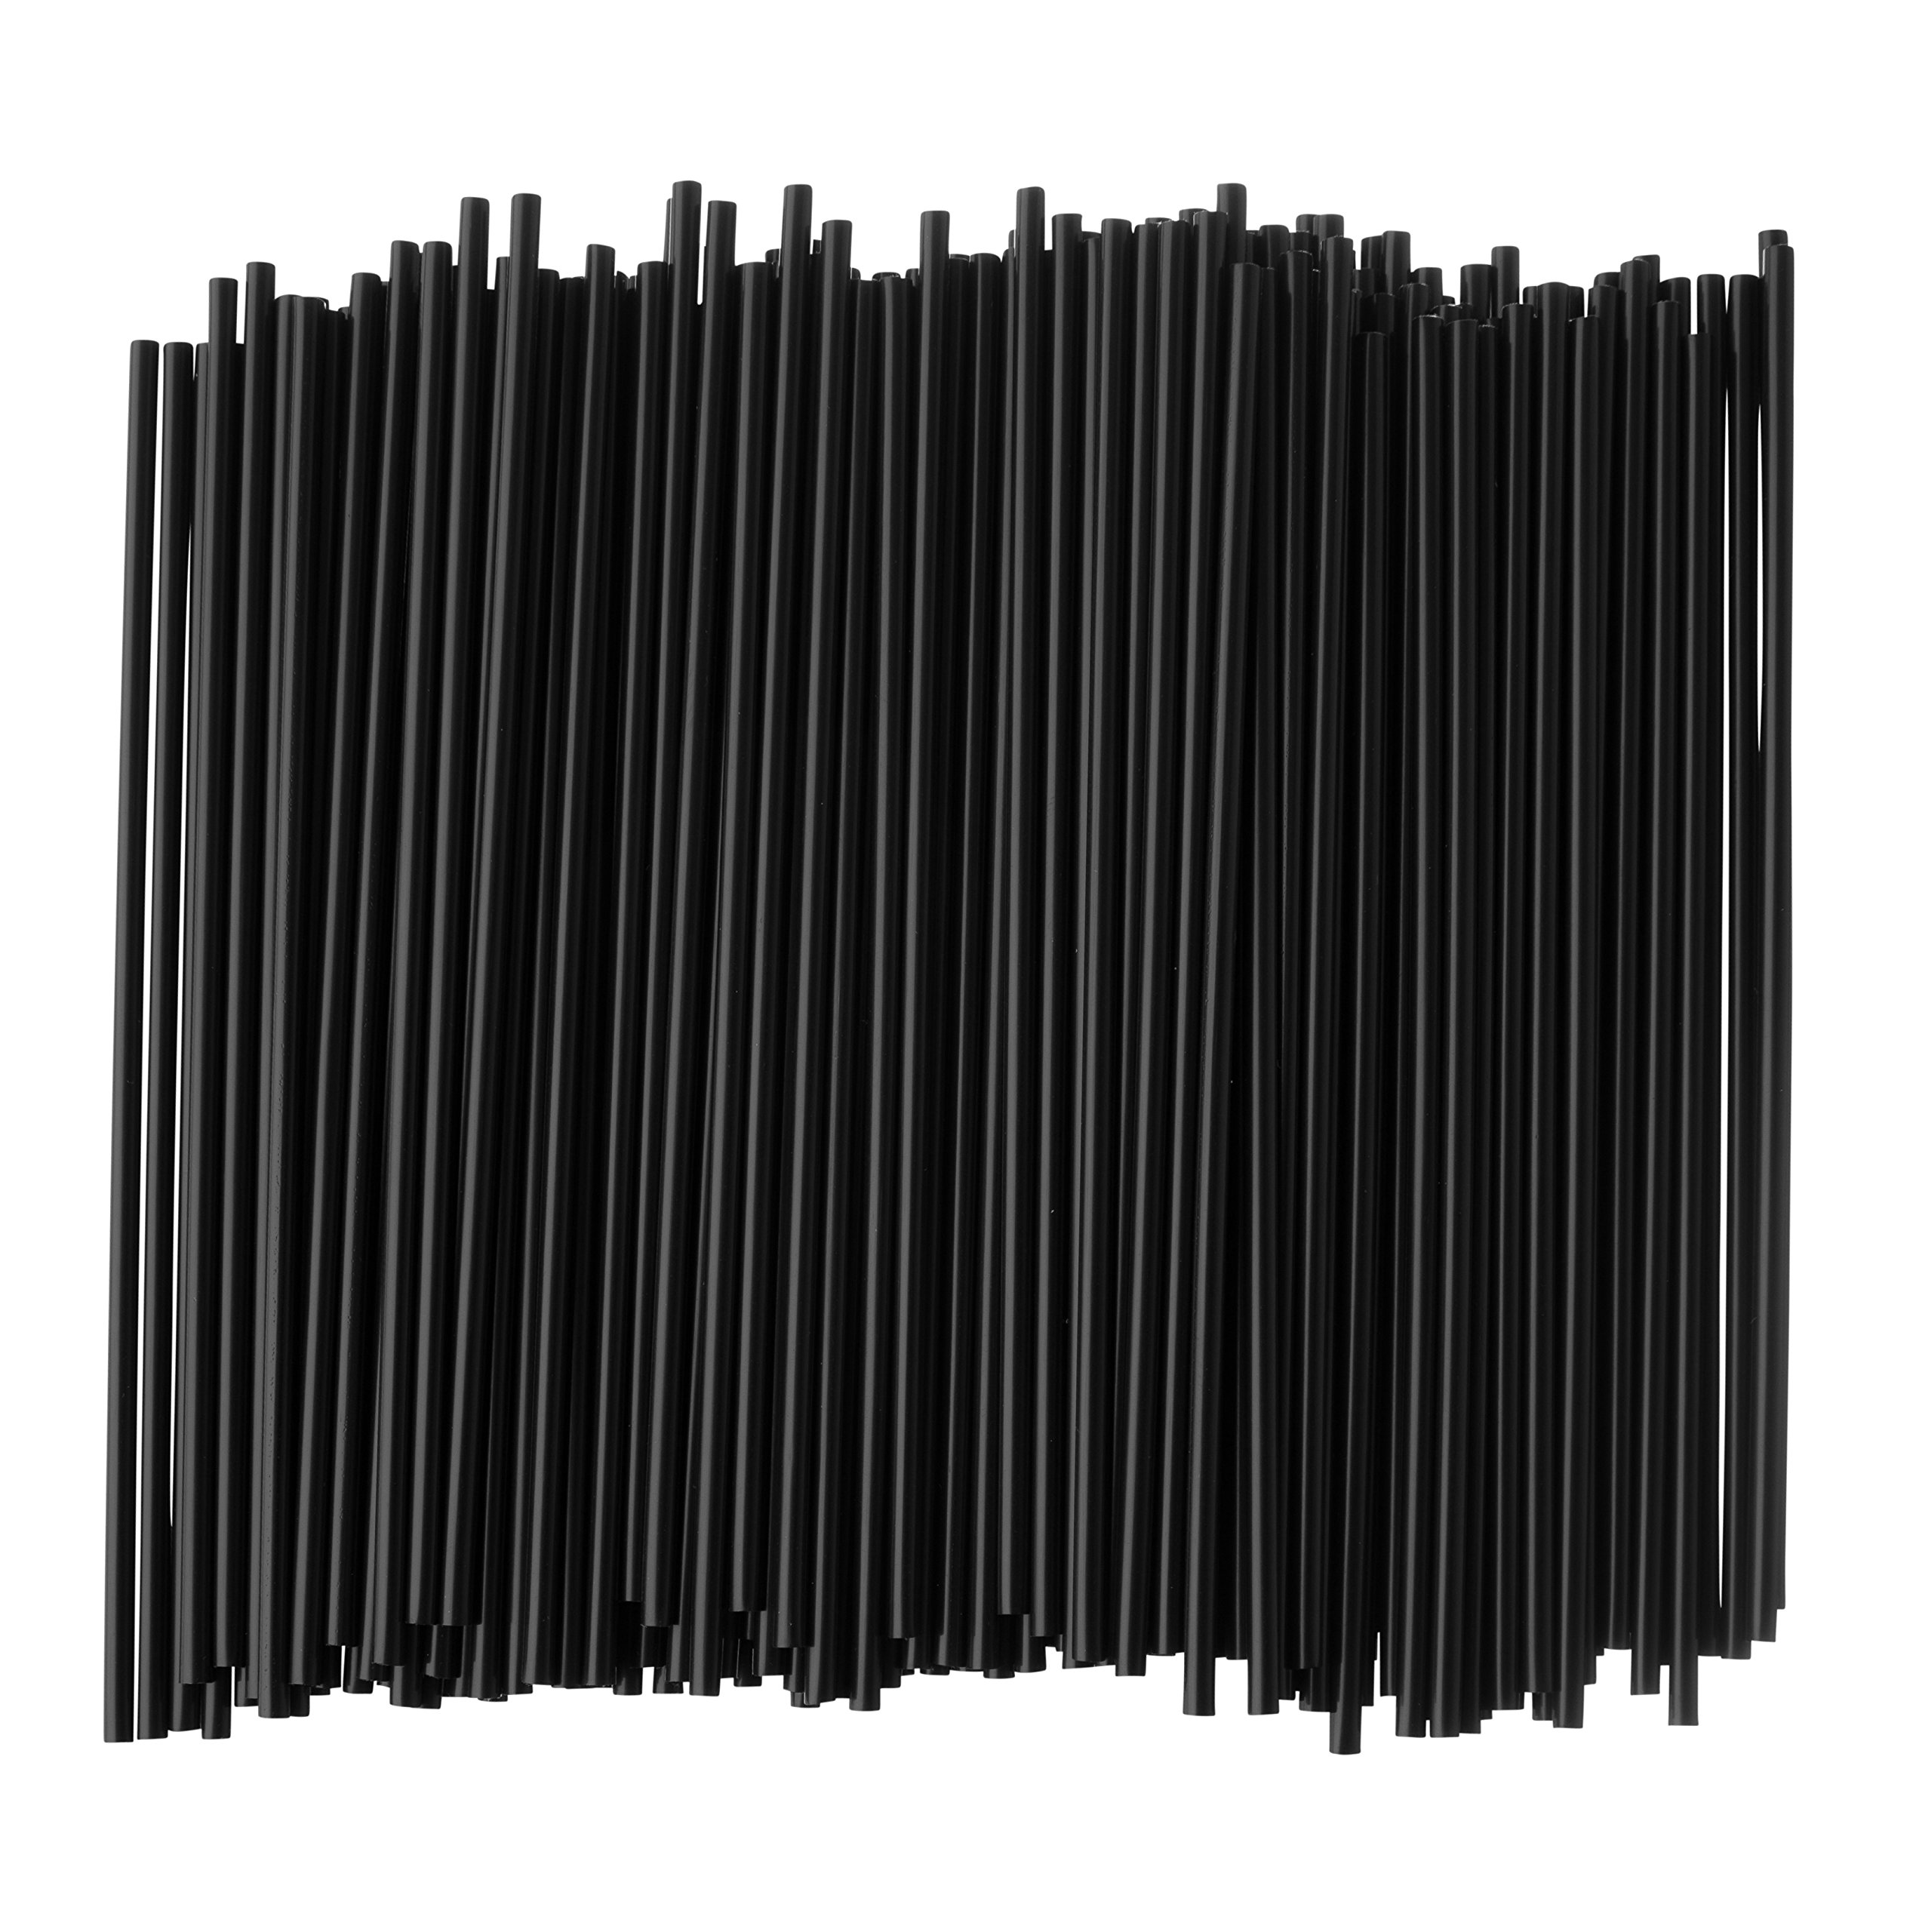 Crystalware, Plastic Stirrer, Sip Stirrer, For Coffee and Cocktail, 5 Inches, 1000/Box, Black by Crystalware (Image #3)